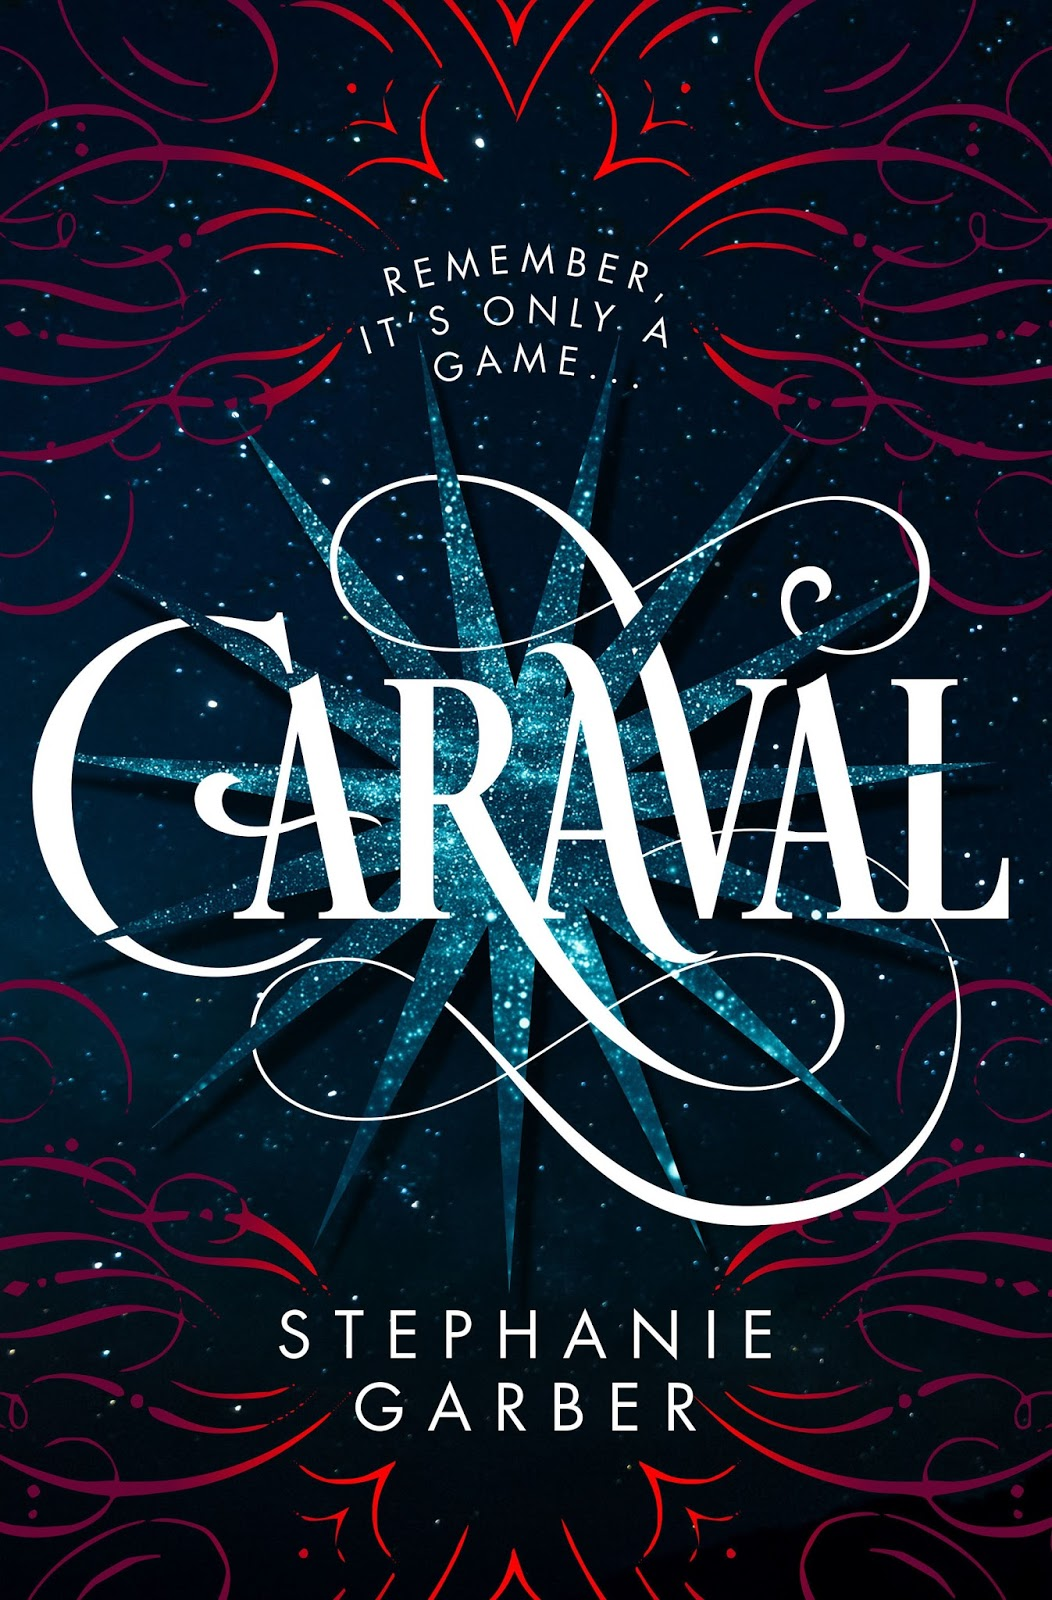 Caraval Stephanie Garber cover